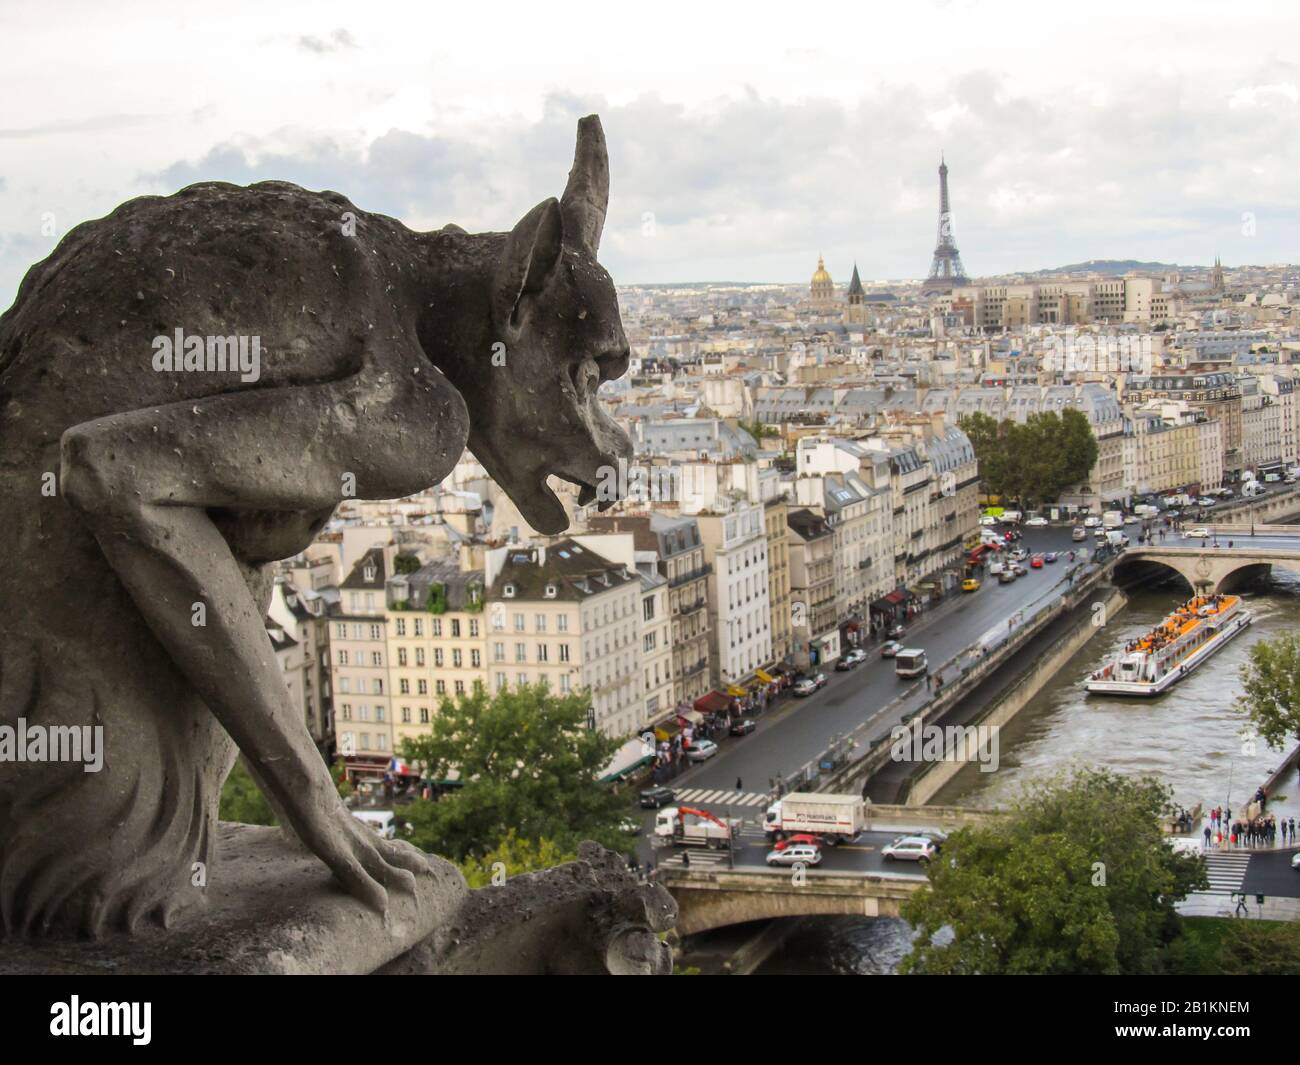 View of the Paris cityscape, including the Eiffel Tower and the River Seine, from one of the towers of Notre-Dame, with a stone carved Gargoyle in the Stock Photo